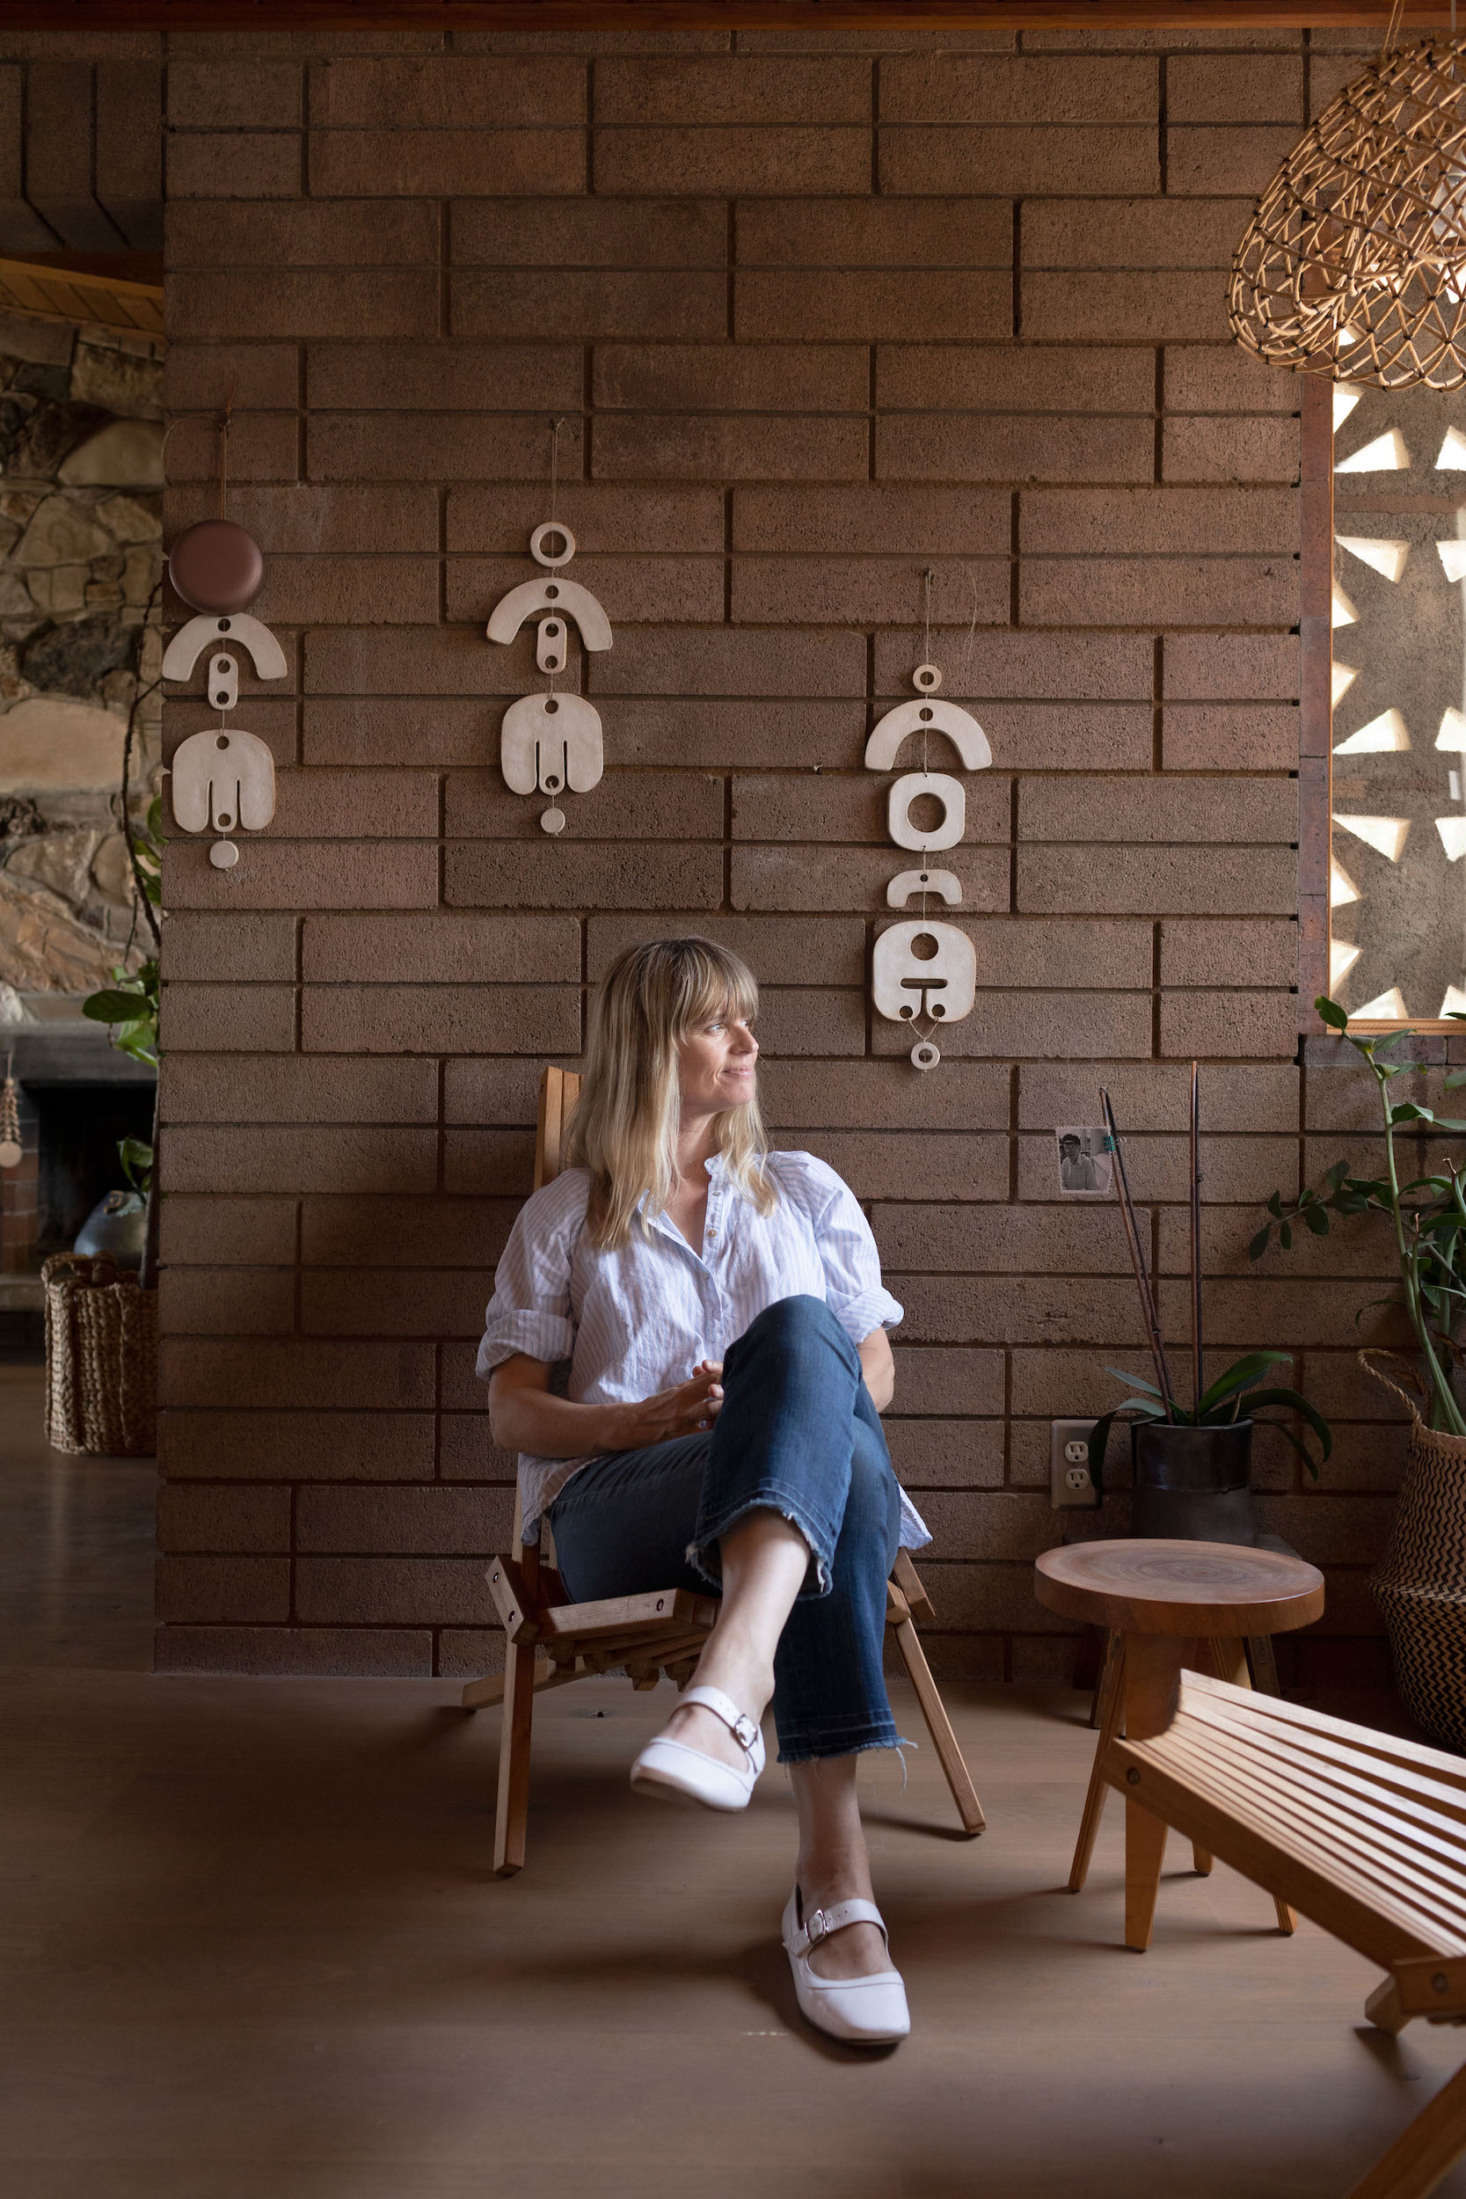 Photography by Ye Rin Mok, for Creative Spaces, from Wild at Heart: Ceramicist Tracy Wilkinson's Off-the-Beaten-Path Sanctuary.